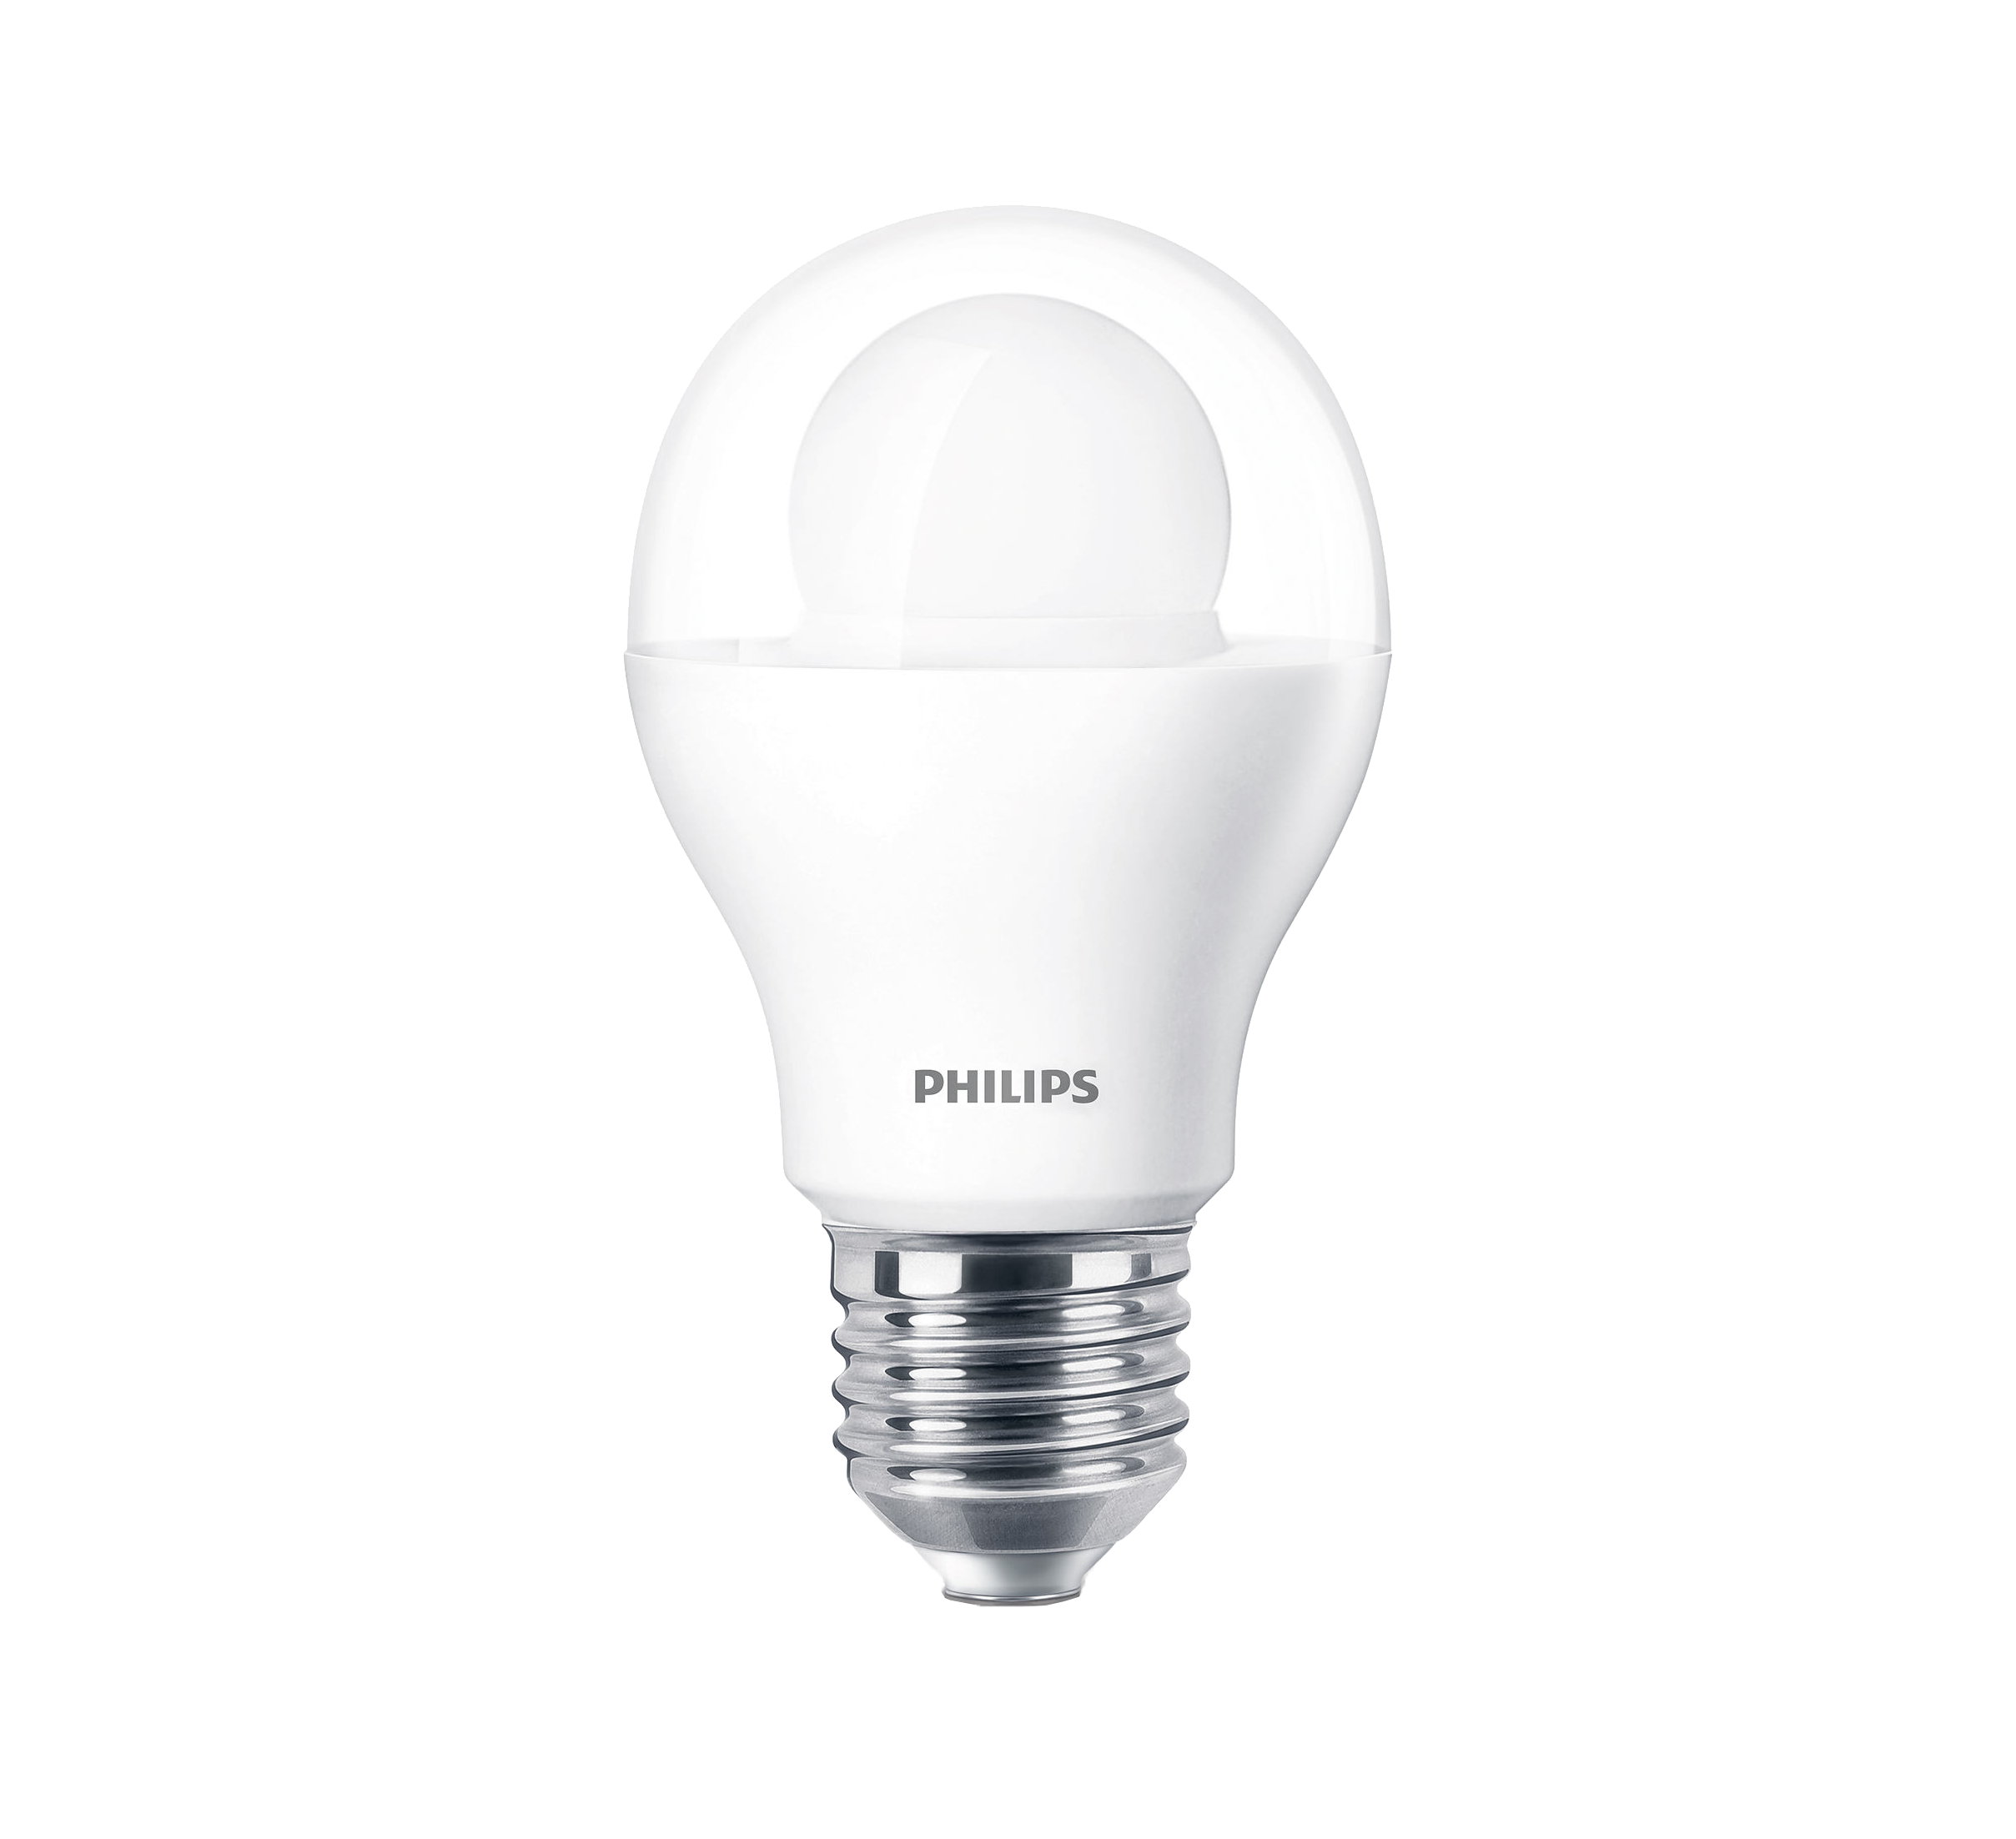 philips led lampe 7w e27 g nstig kaufen e27 leuchtmittel media markt online shop. Black Bedroom Furniture Sets. Home Design Ideas